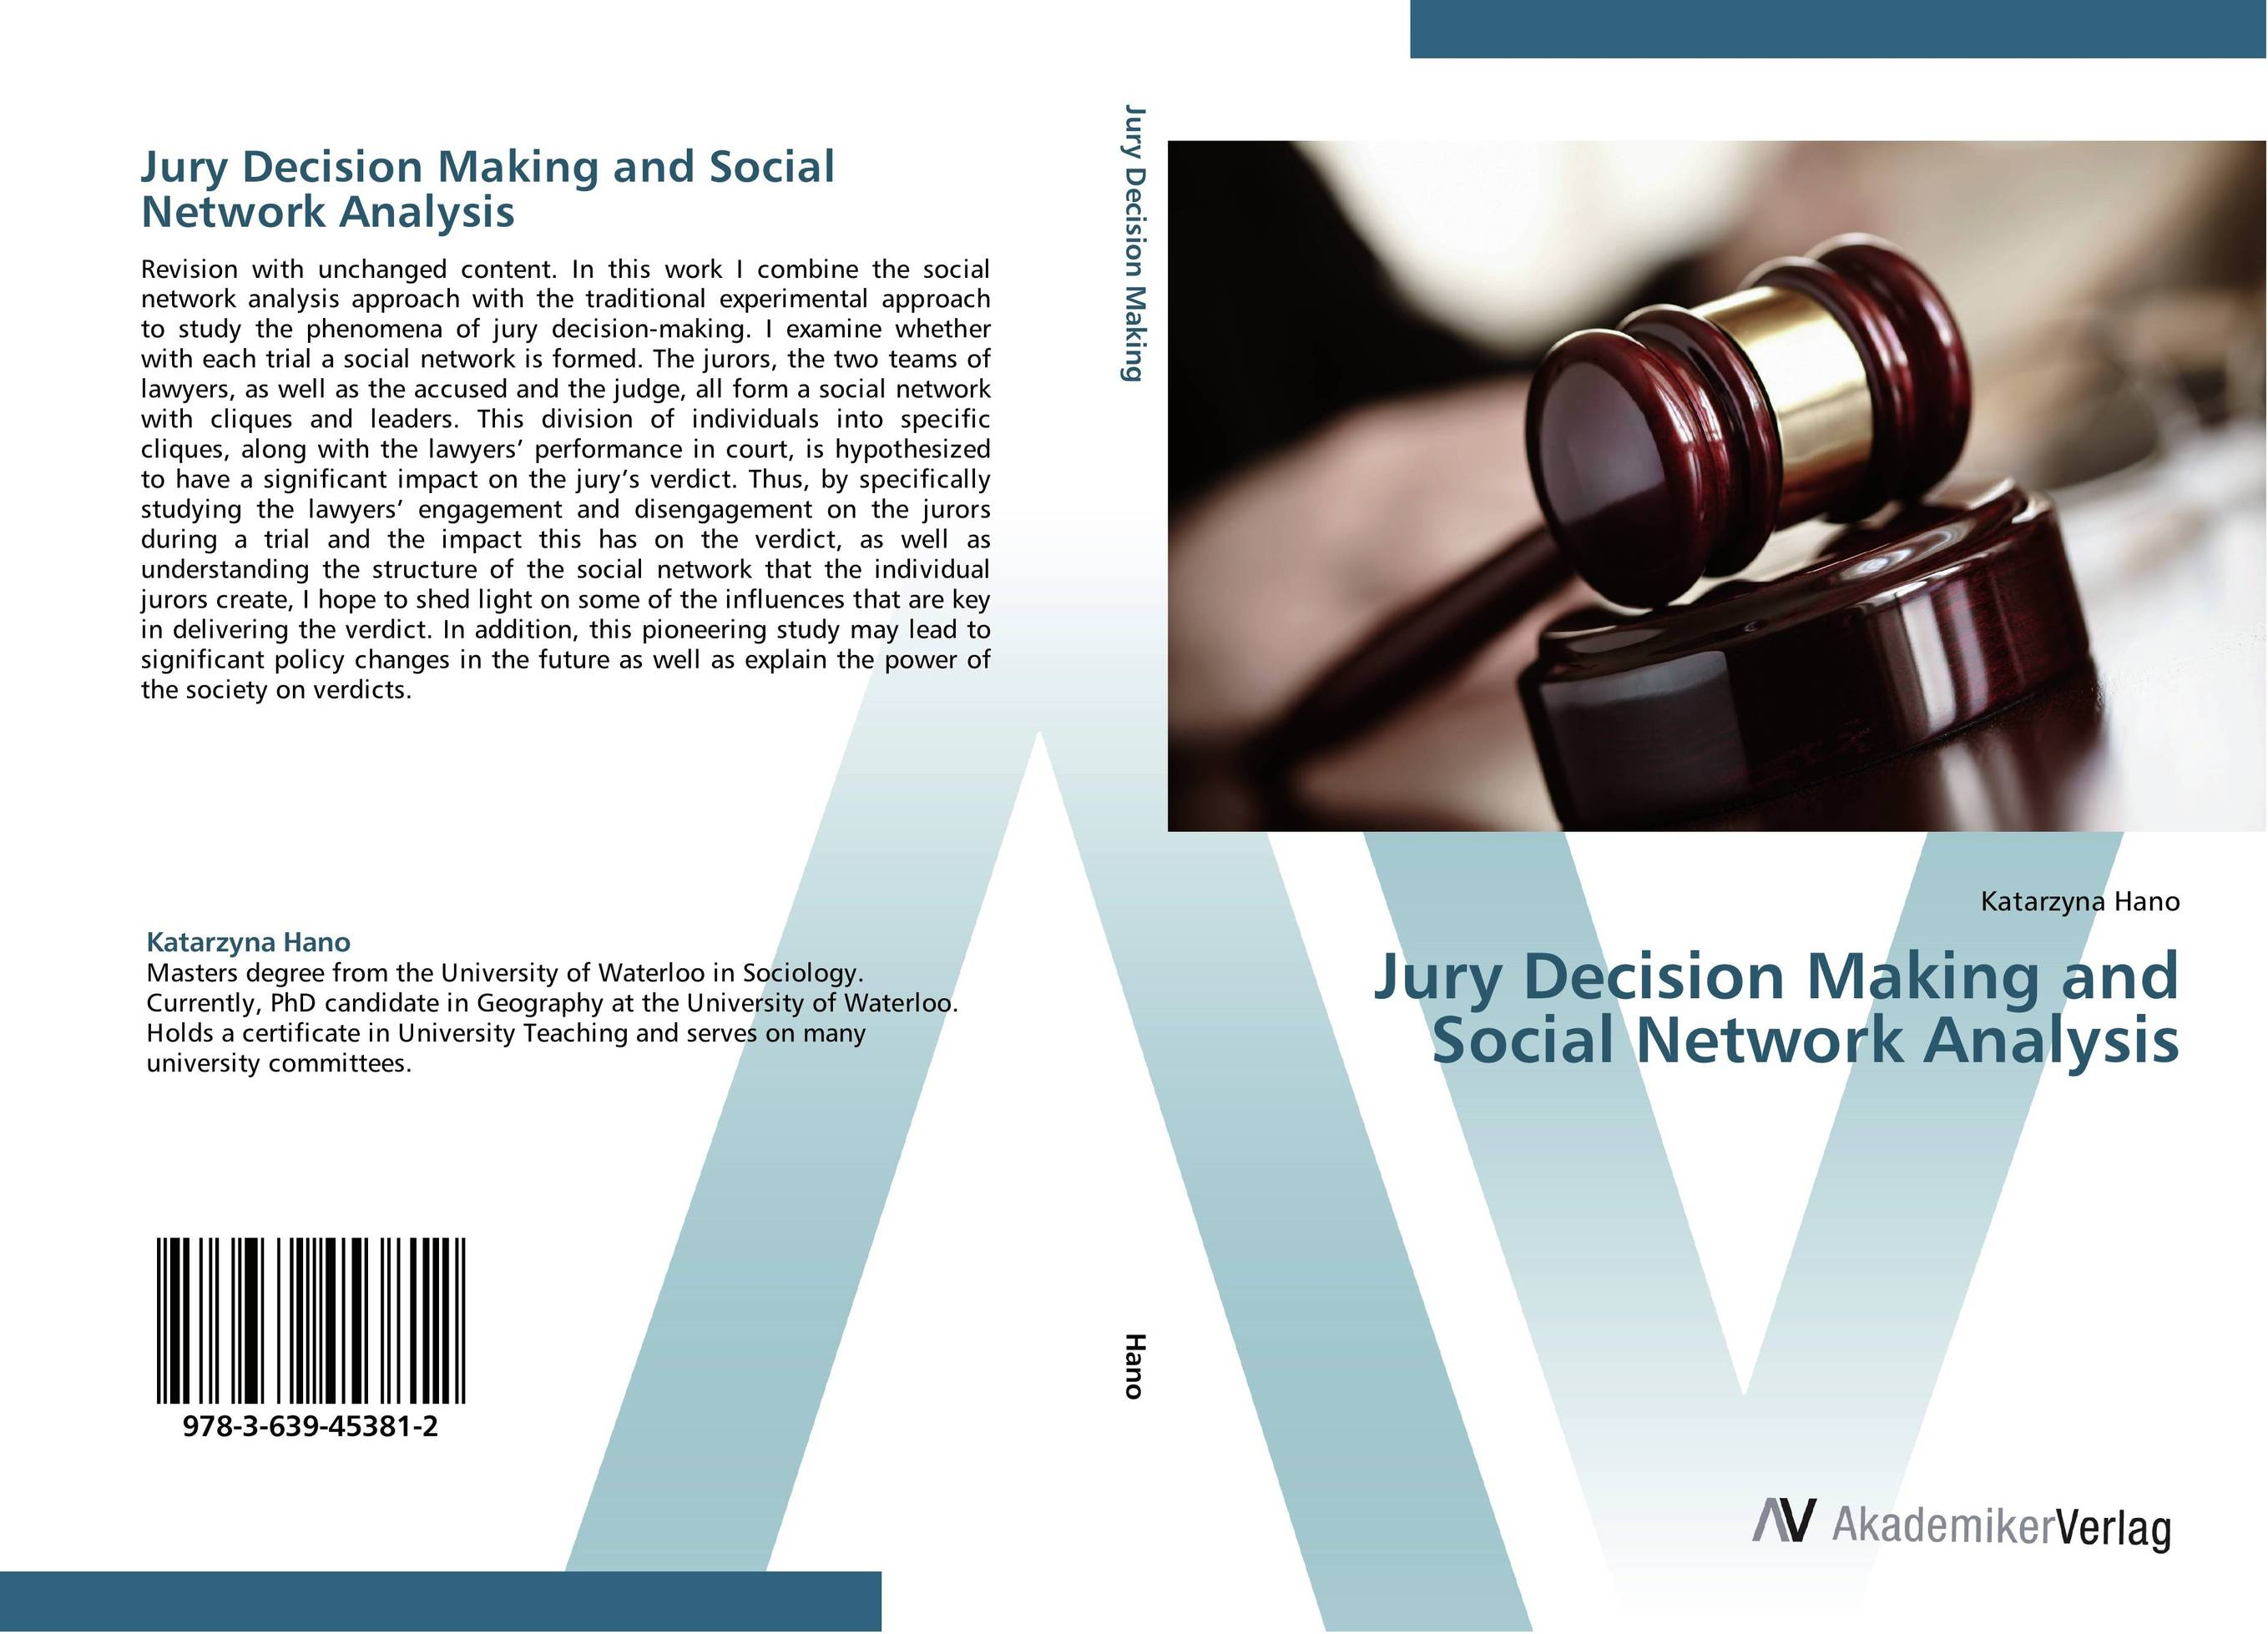 Jury Decision Making and Social Network Analysis the verdict